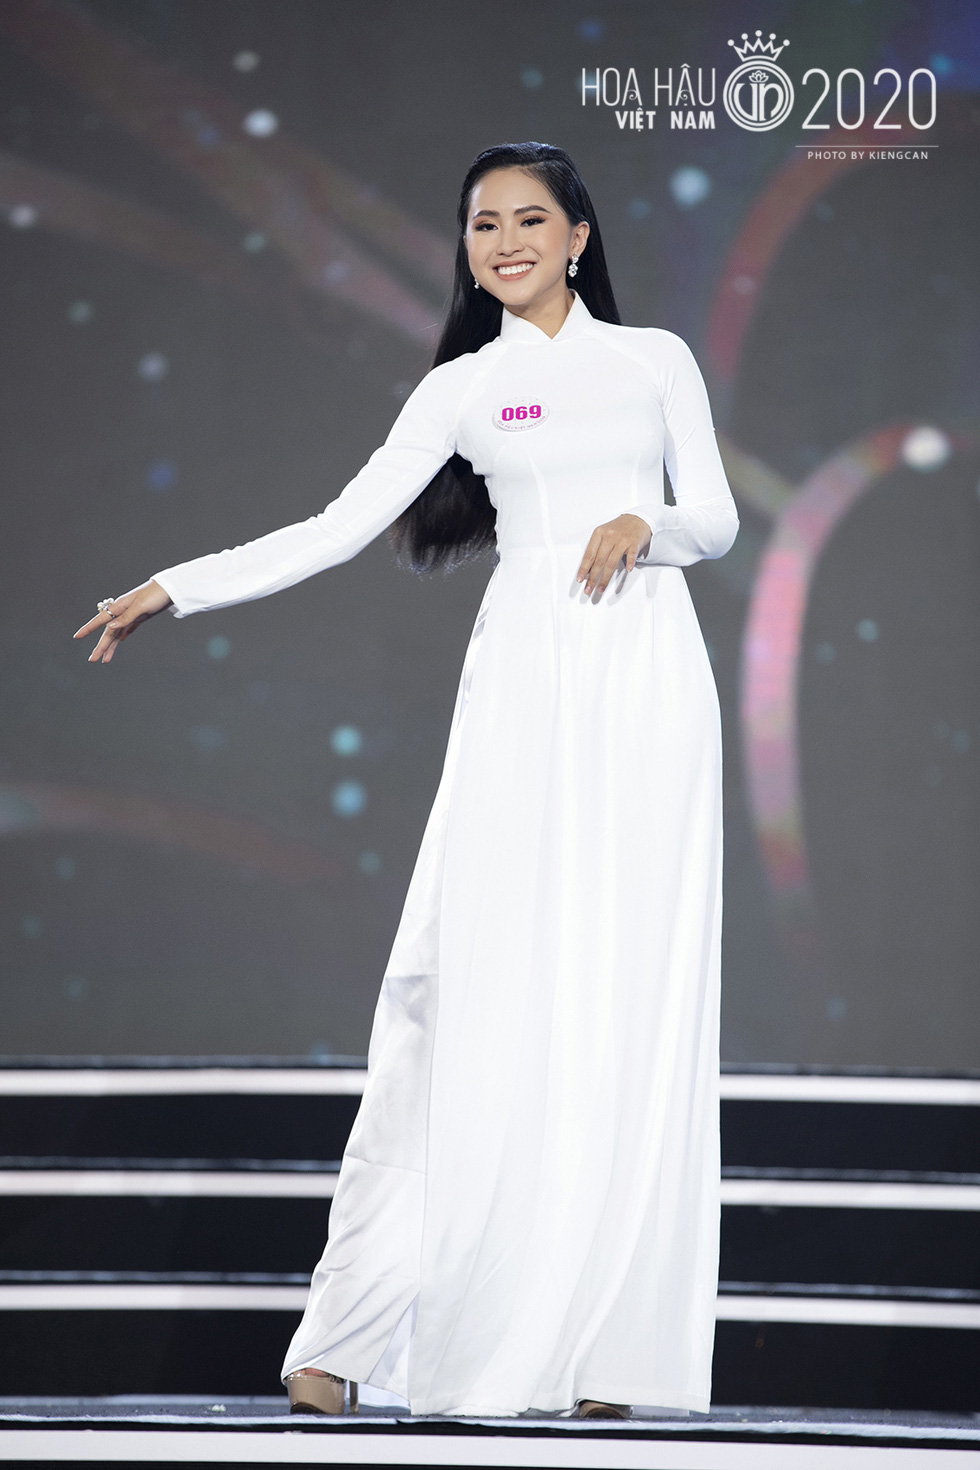 35 bright faces, who will be Miss Vietnam in the final November 21?  Photo 3.